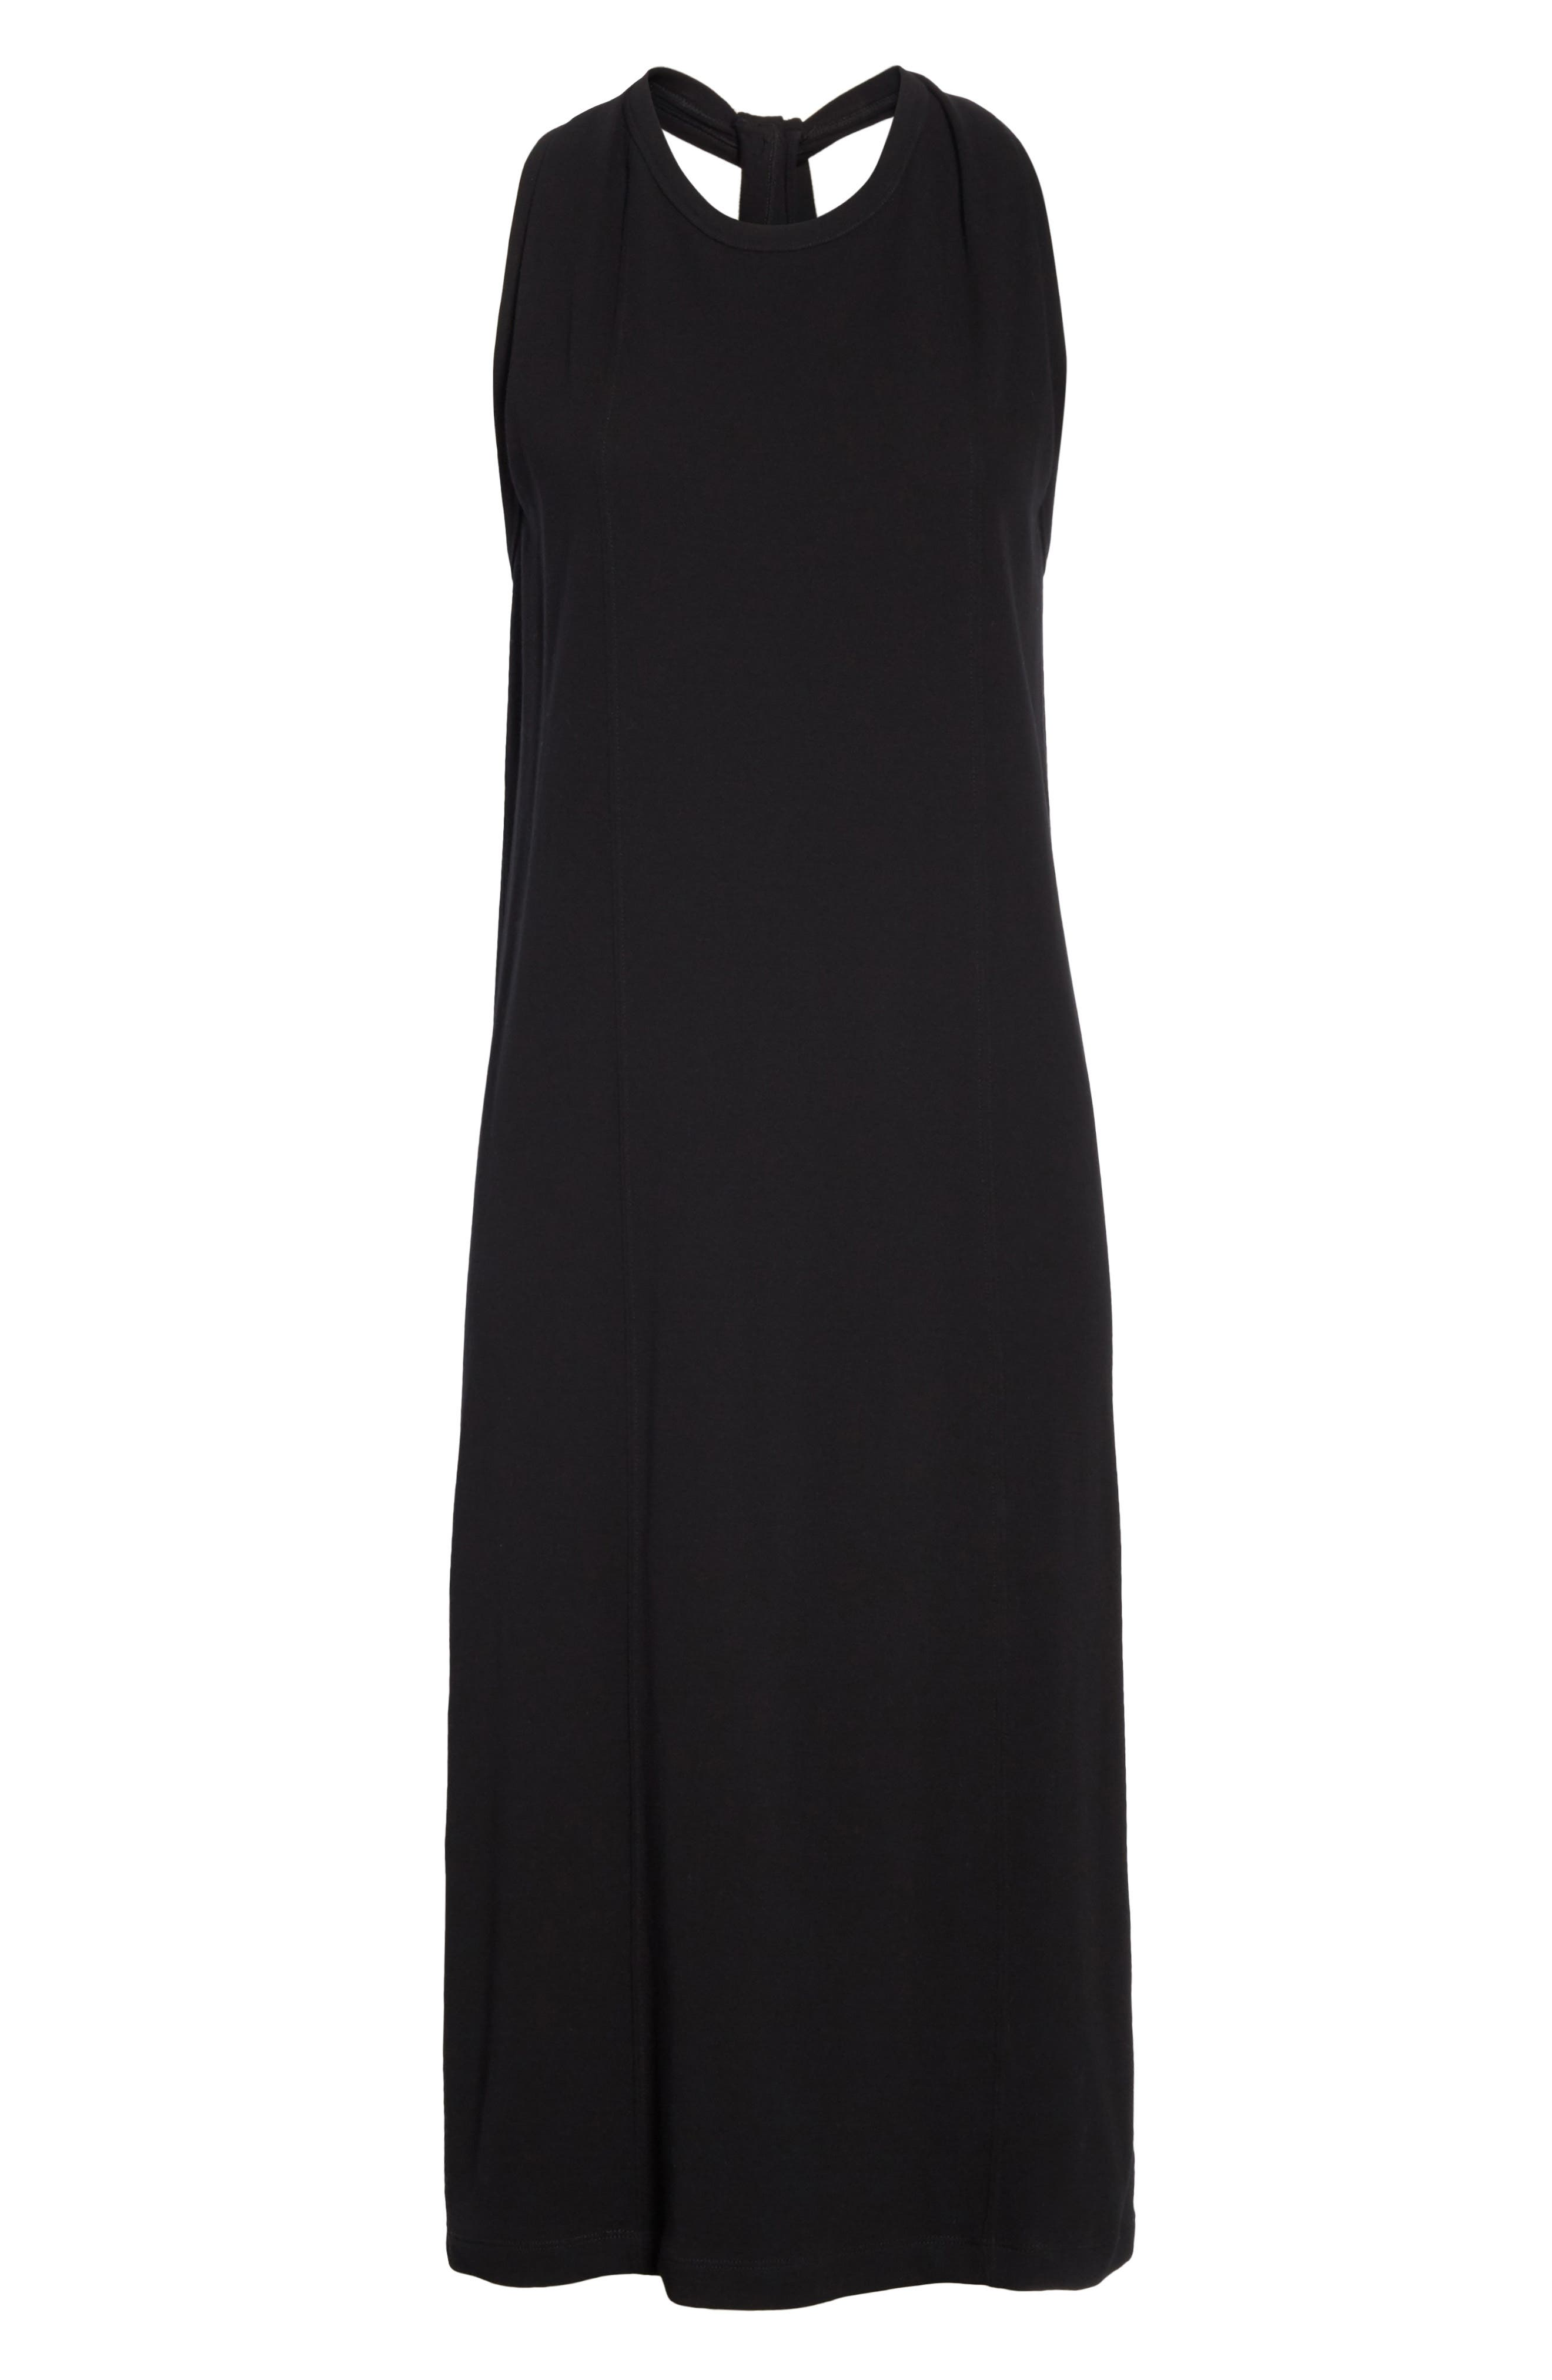 HELMUT LANG, Halter Neck Cotton Jersey Dress, Alternate thumbnail 7, color, BLACK